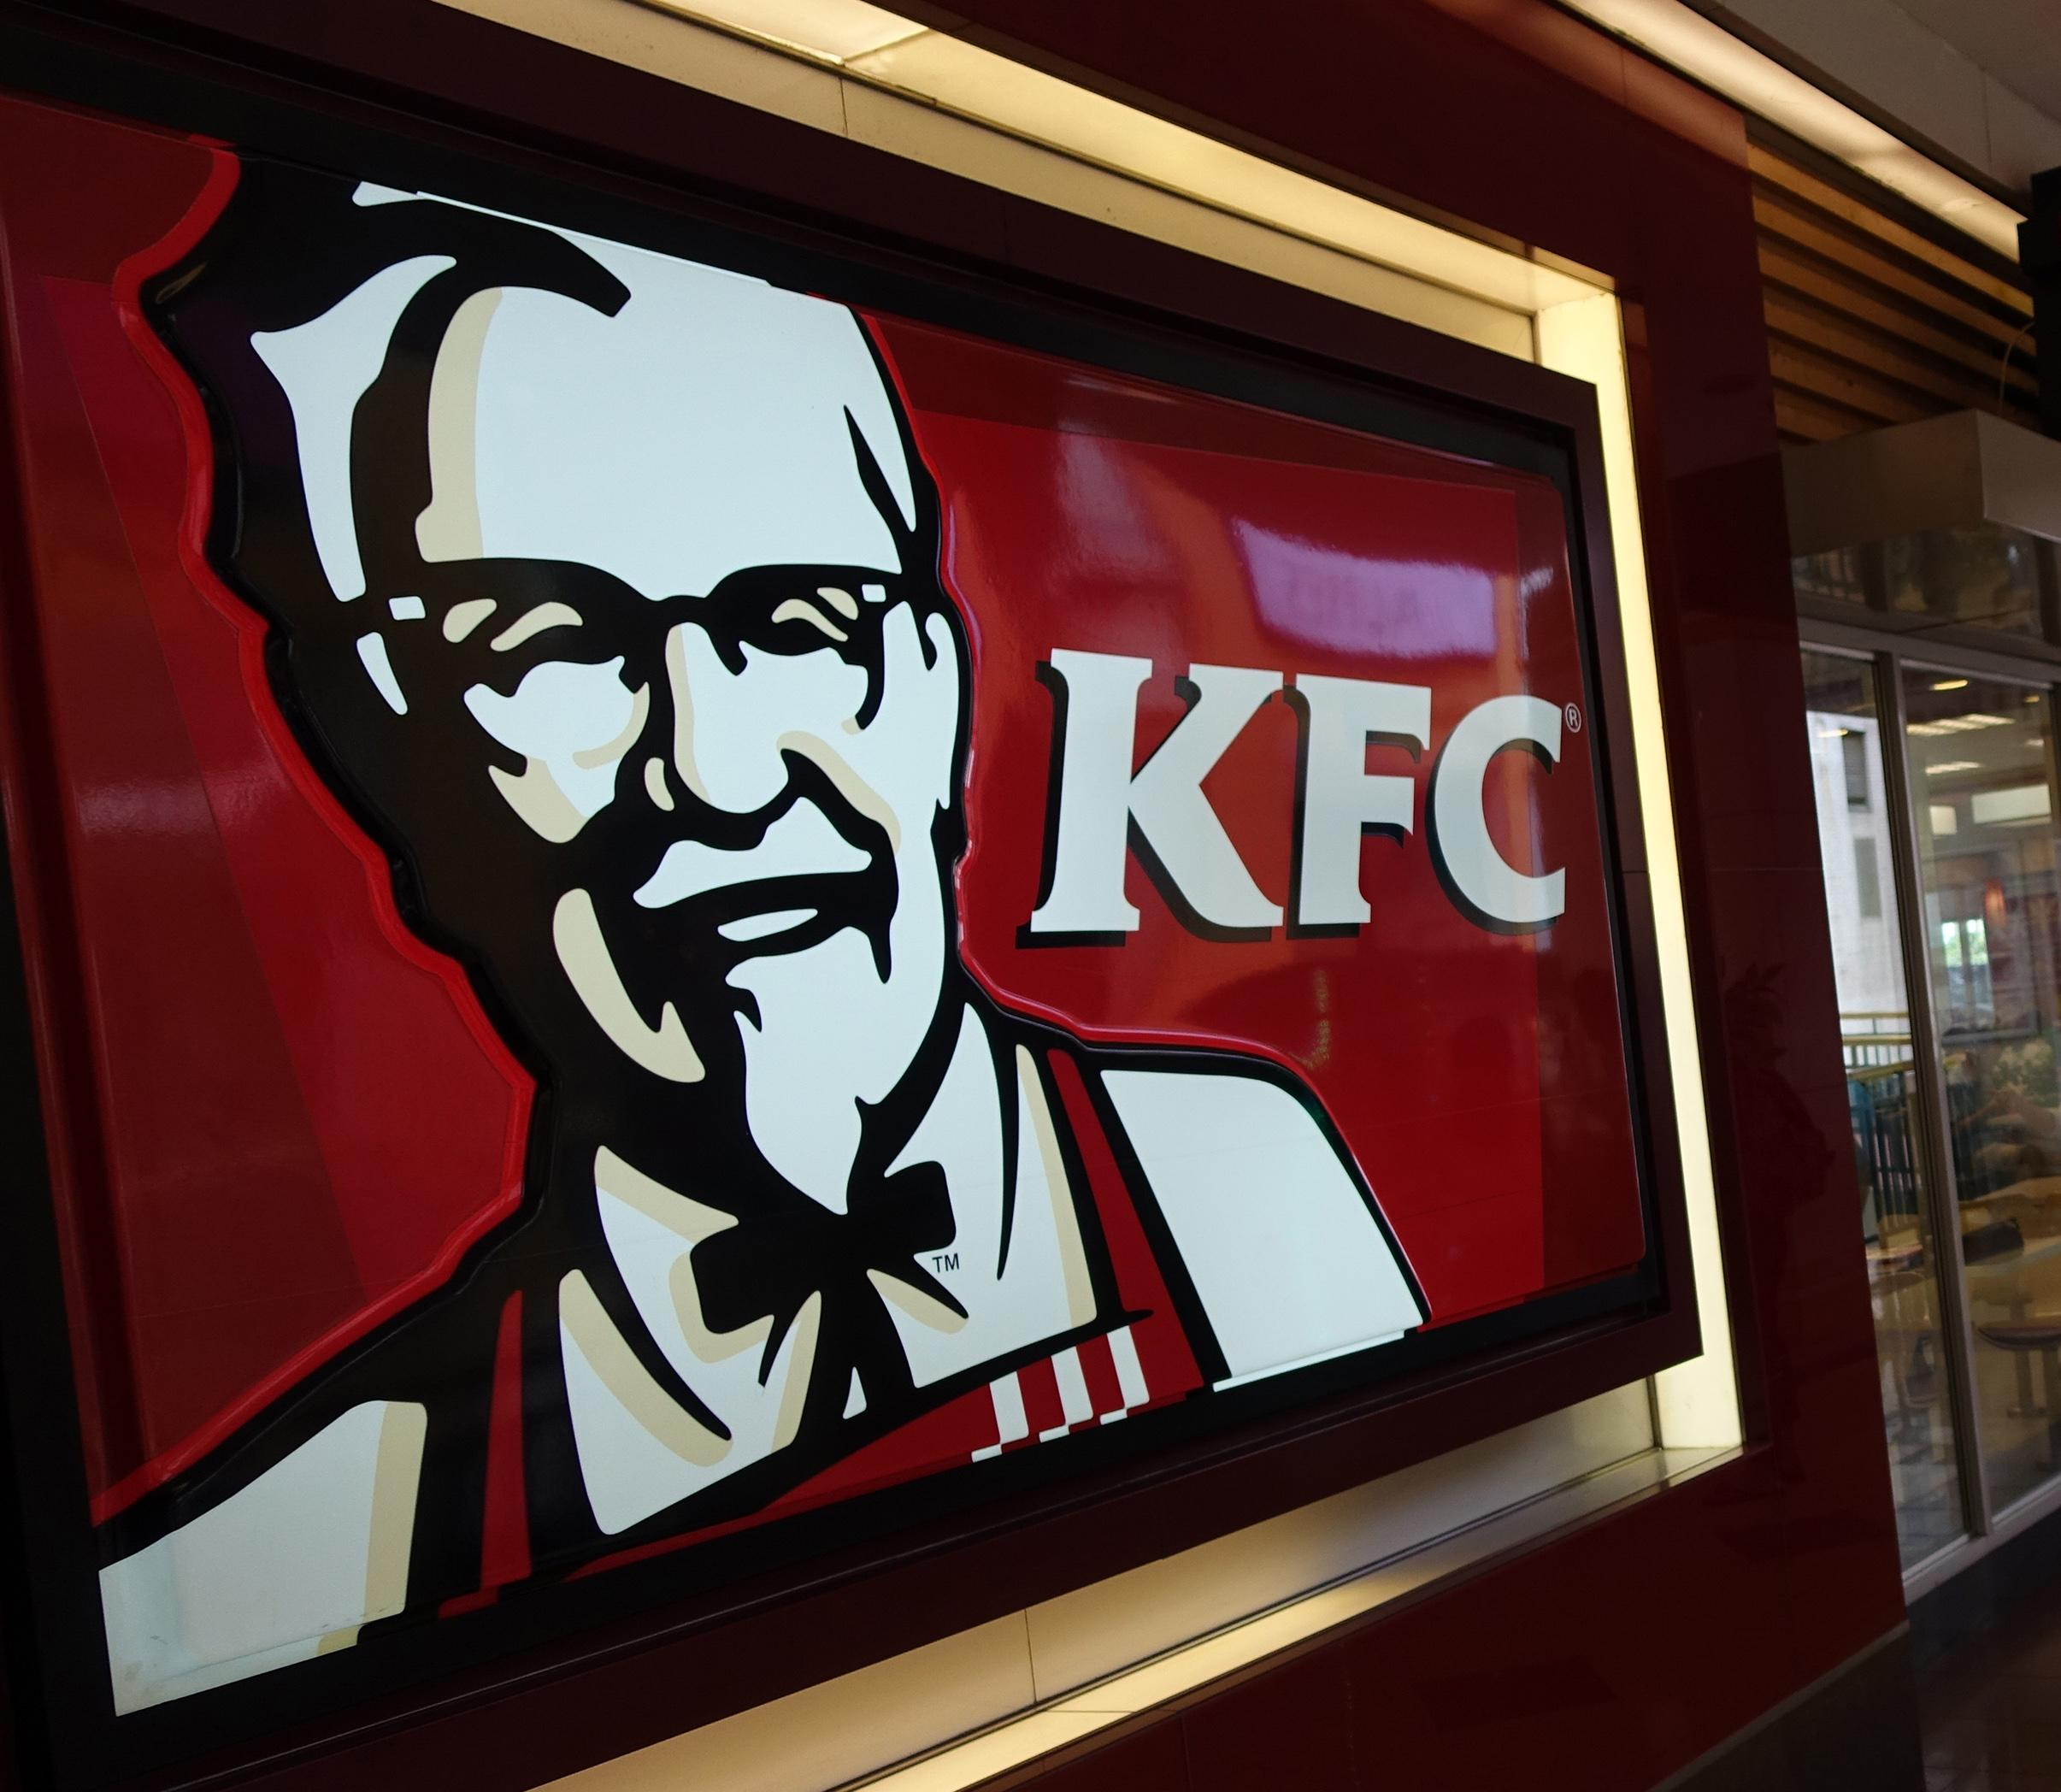 Do you want fries with that? Too bad, says KFC Japan